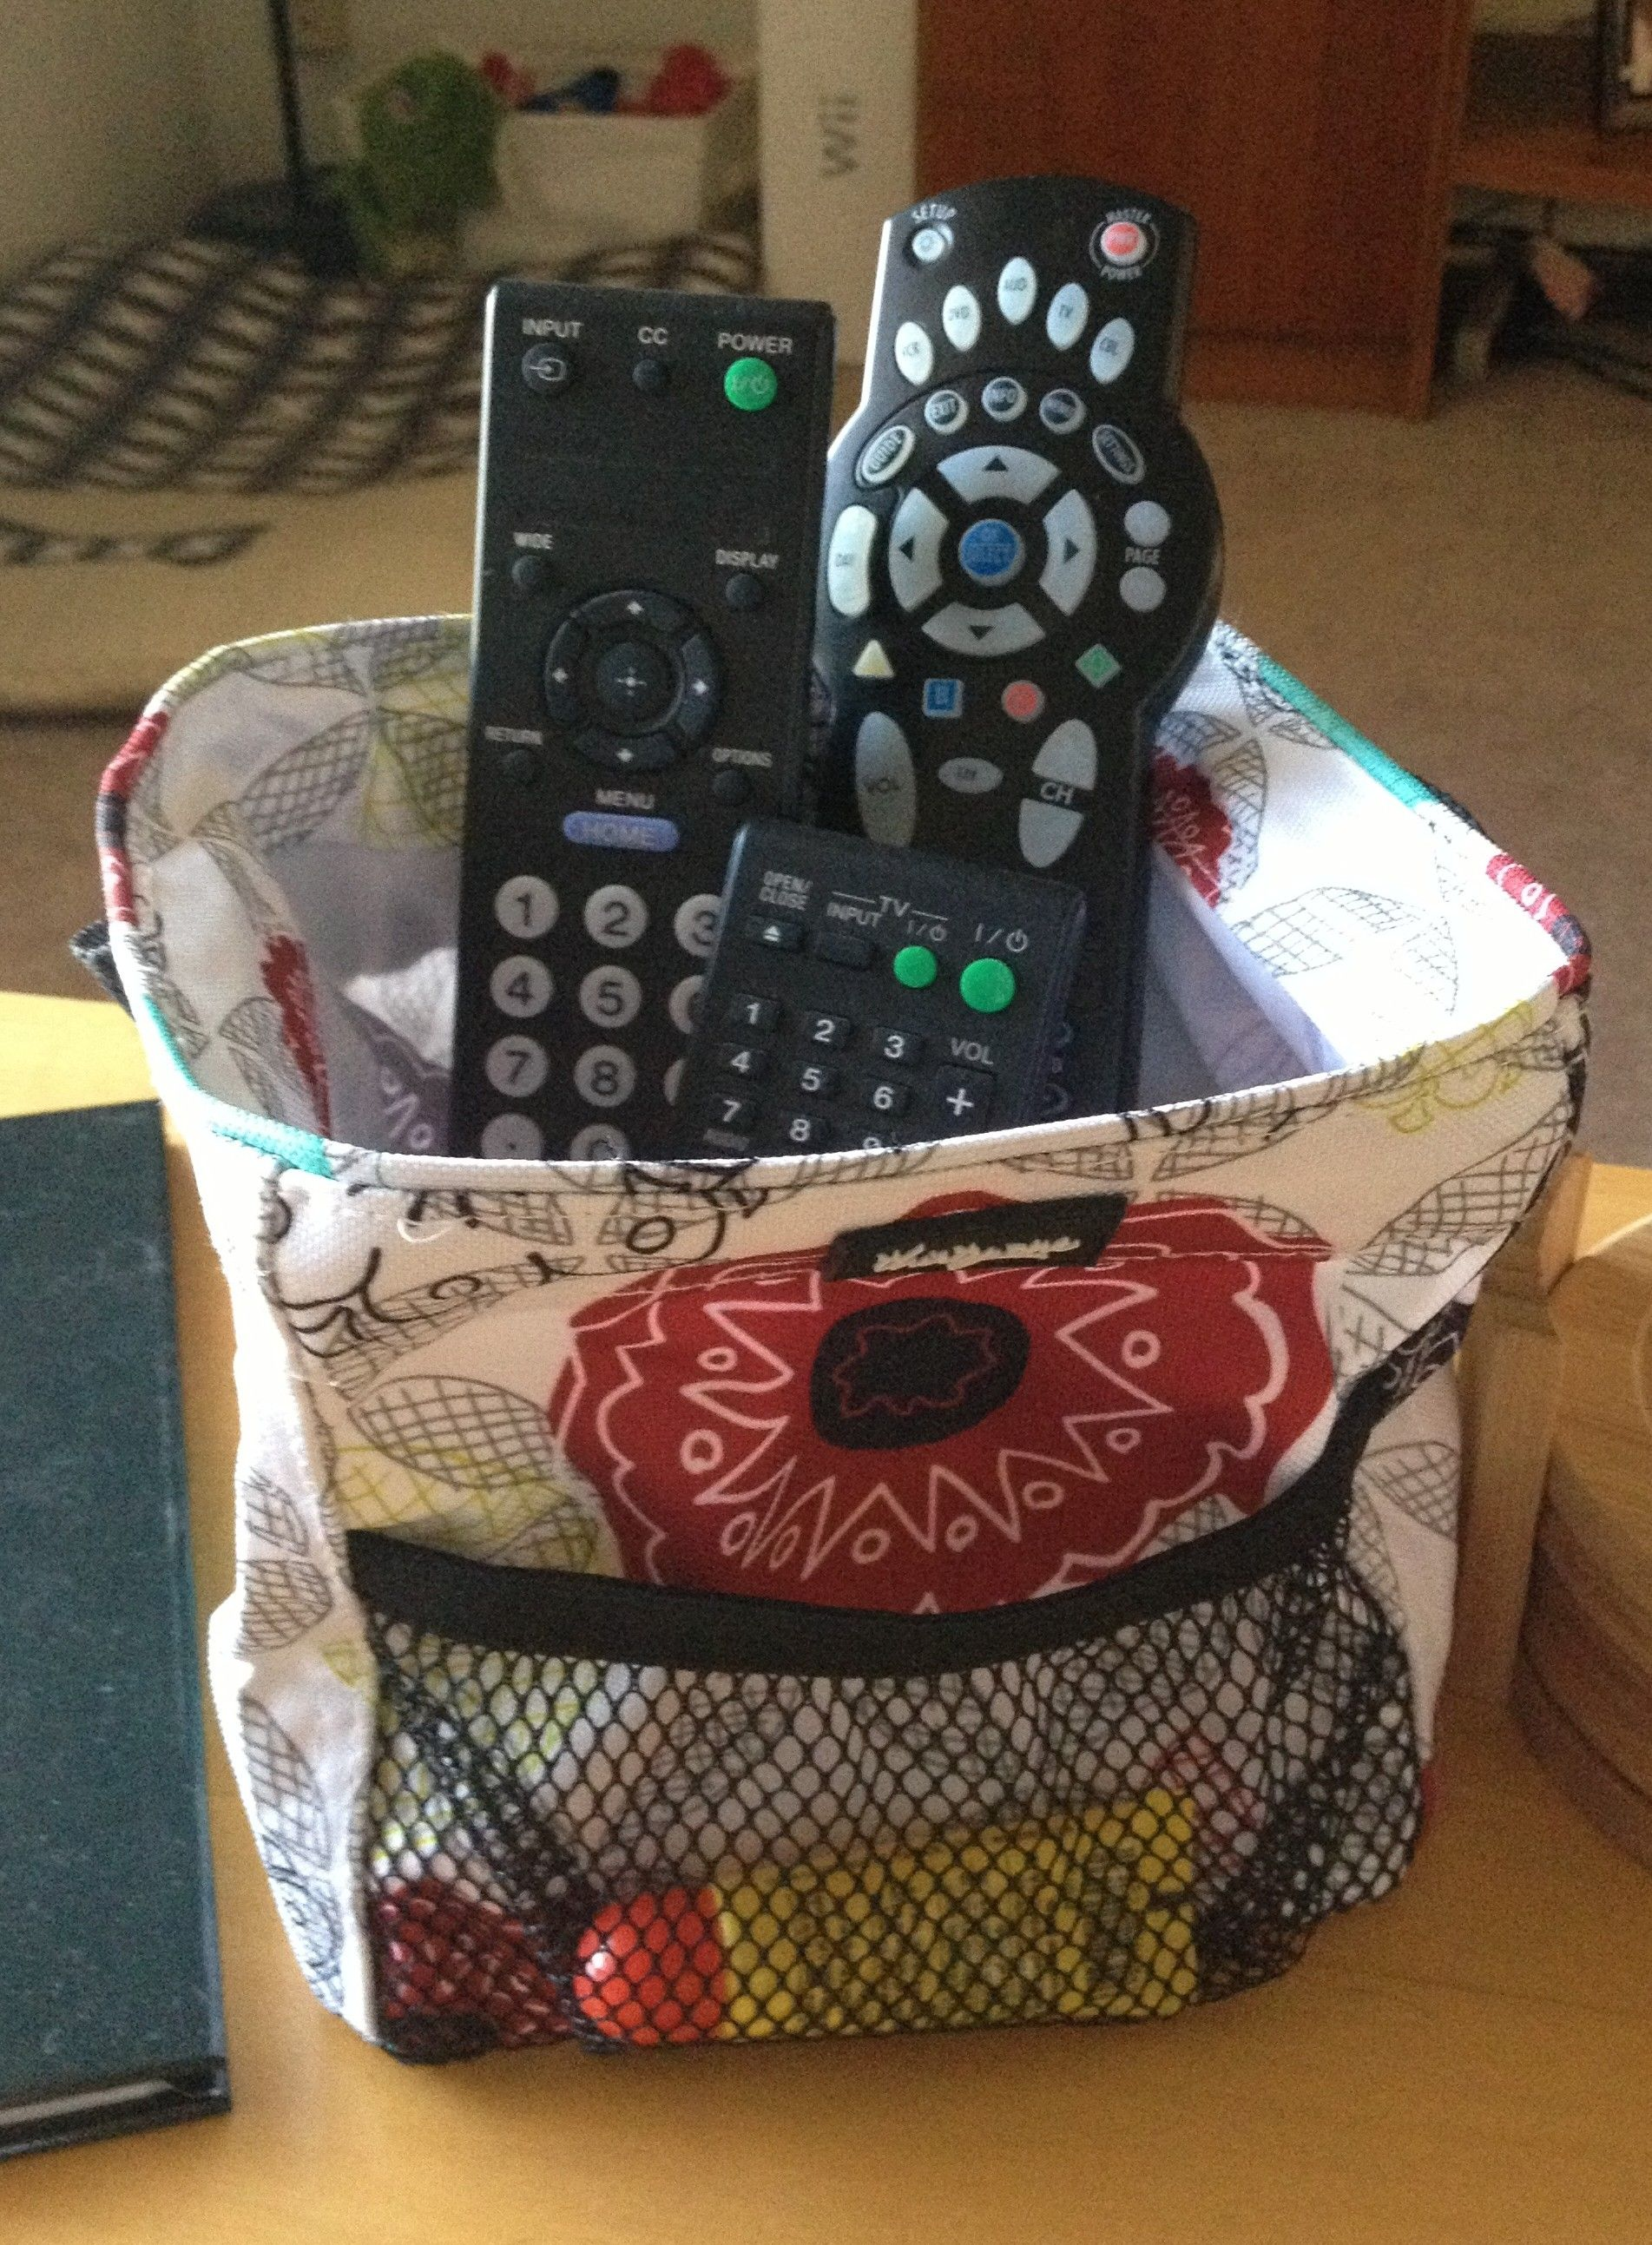 Remote Control Holder On The Coffee Table Thirty One Little Carry All Caddy